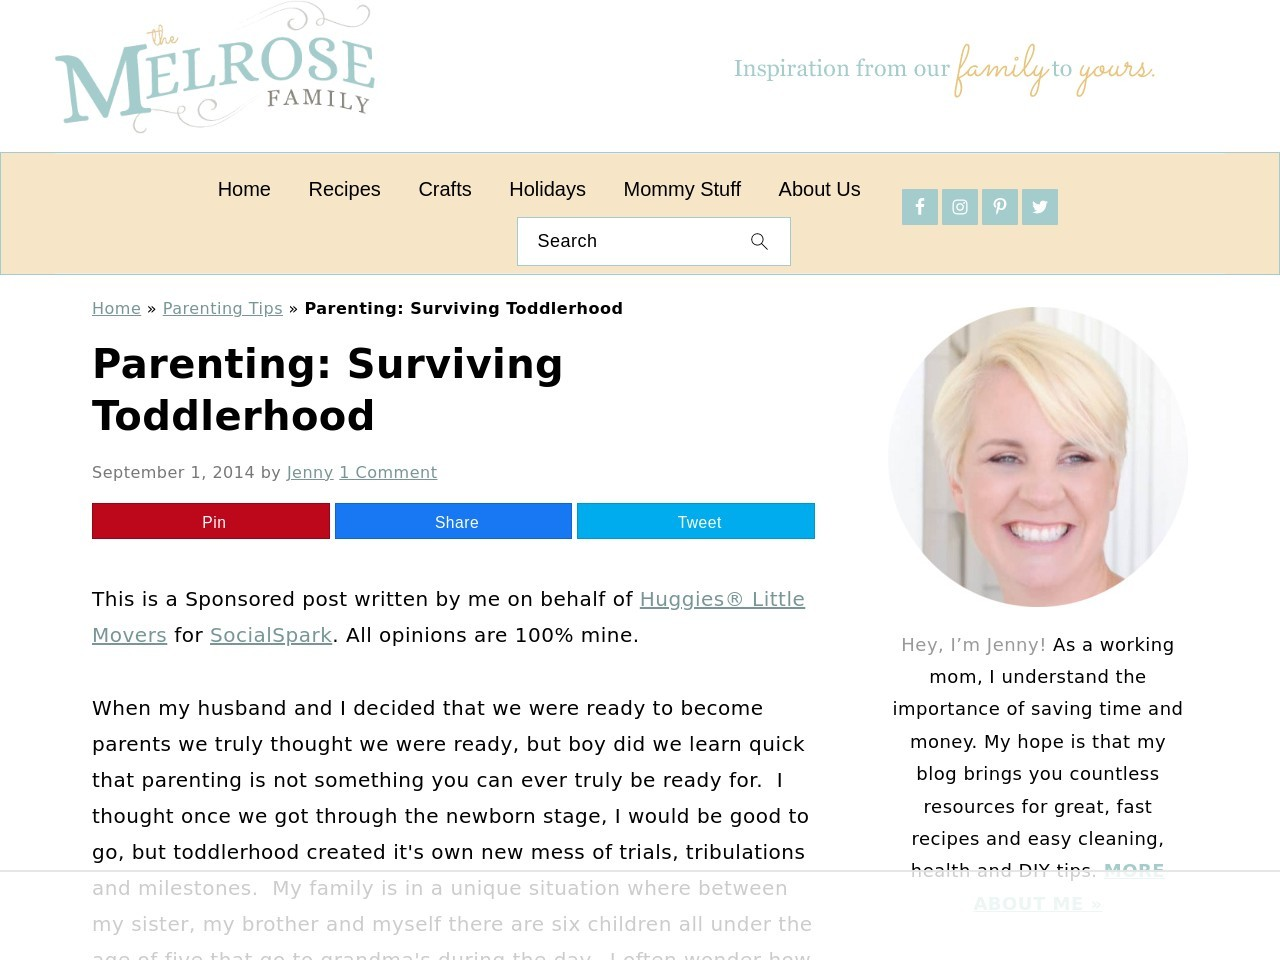 Parenting: Surviving Toddlerhood | The NY Melrose Family